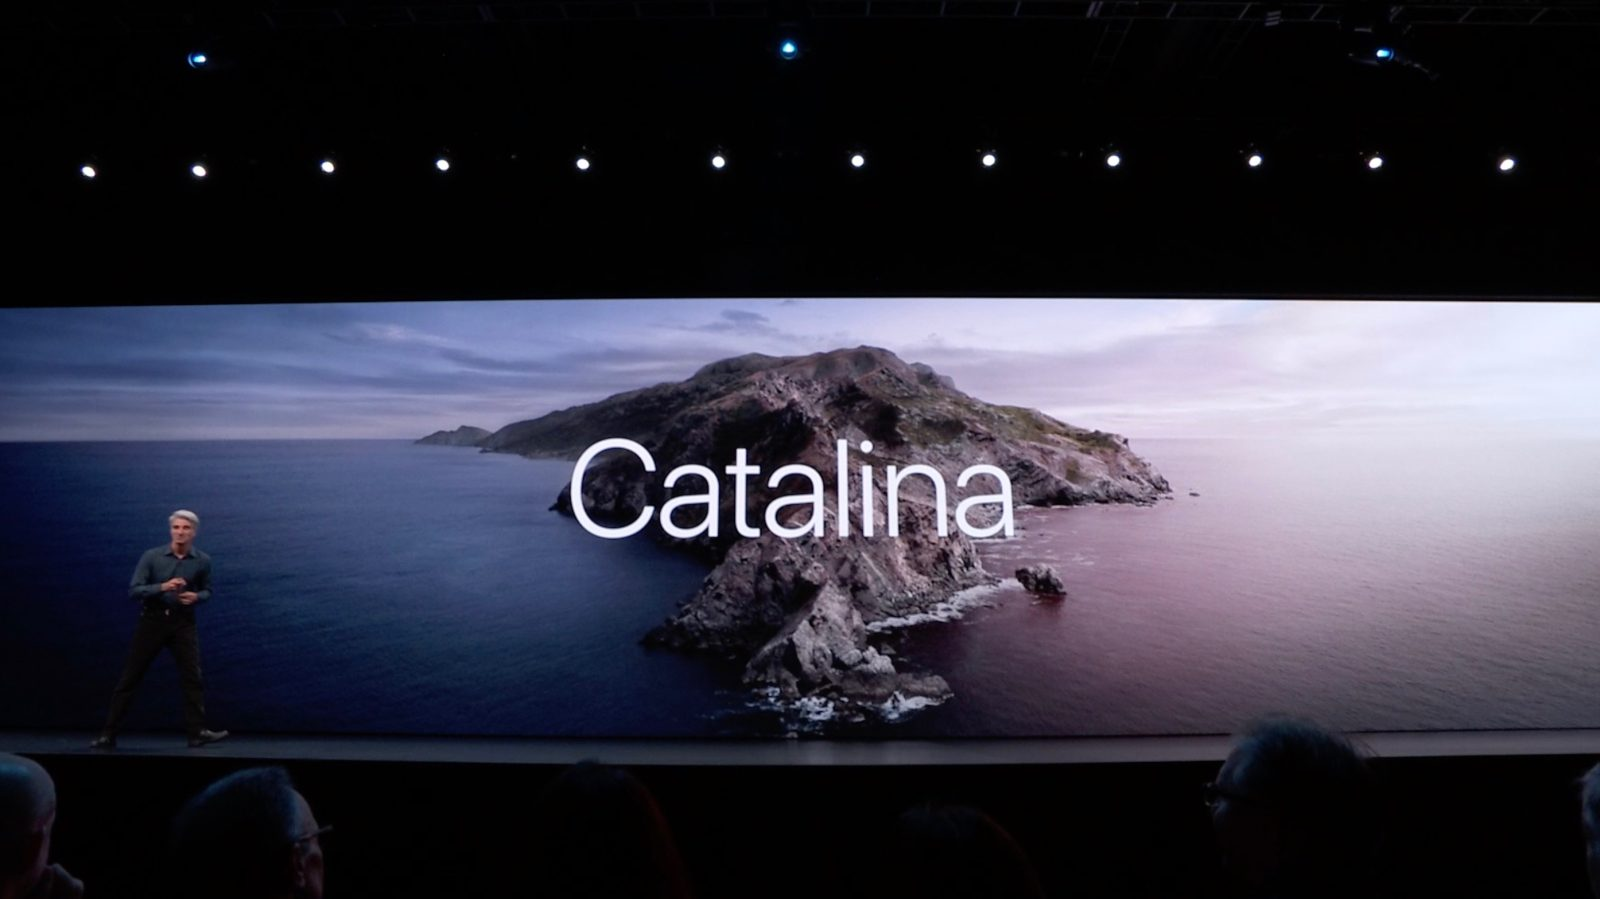 macOS 10.15 Catalina tidbits: iMessage effects, Auto Dark Mode, Sidecar limitations, more